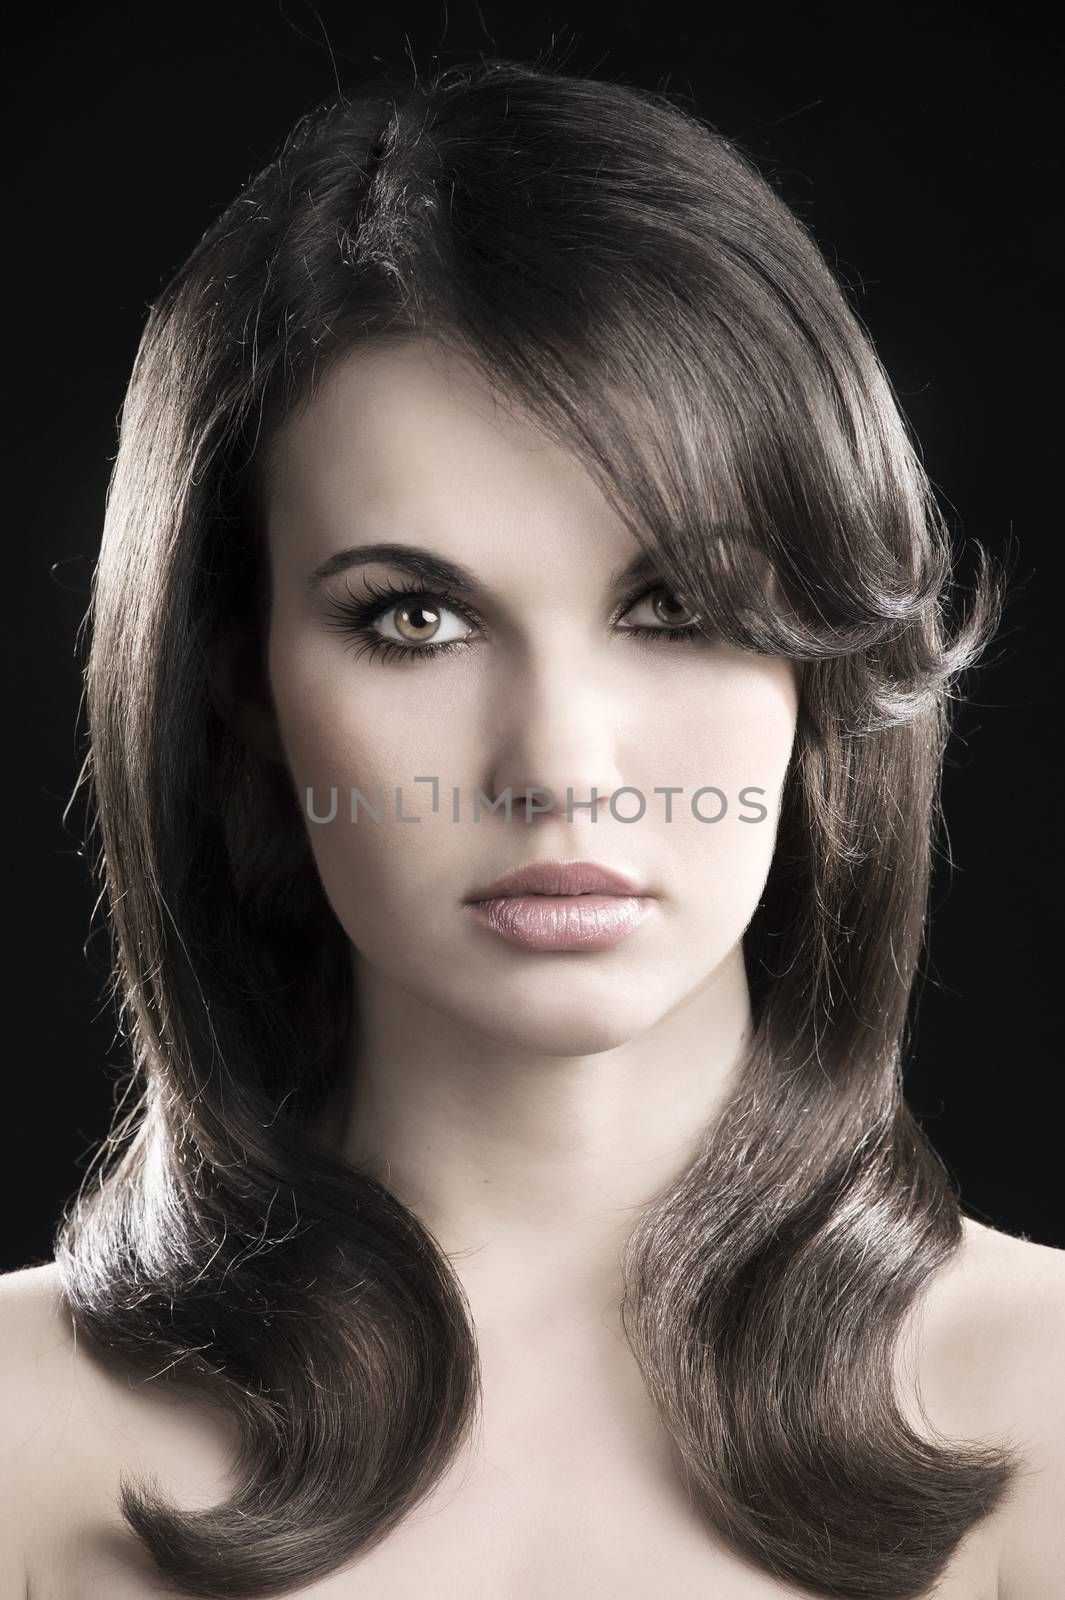 desaturated fashion portrait of beautiful sensual woman with elegant hairstyle over black background